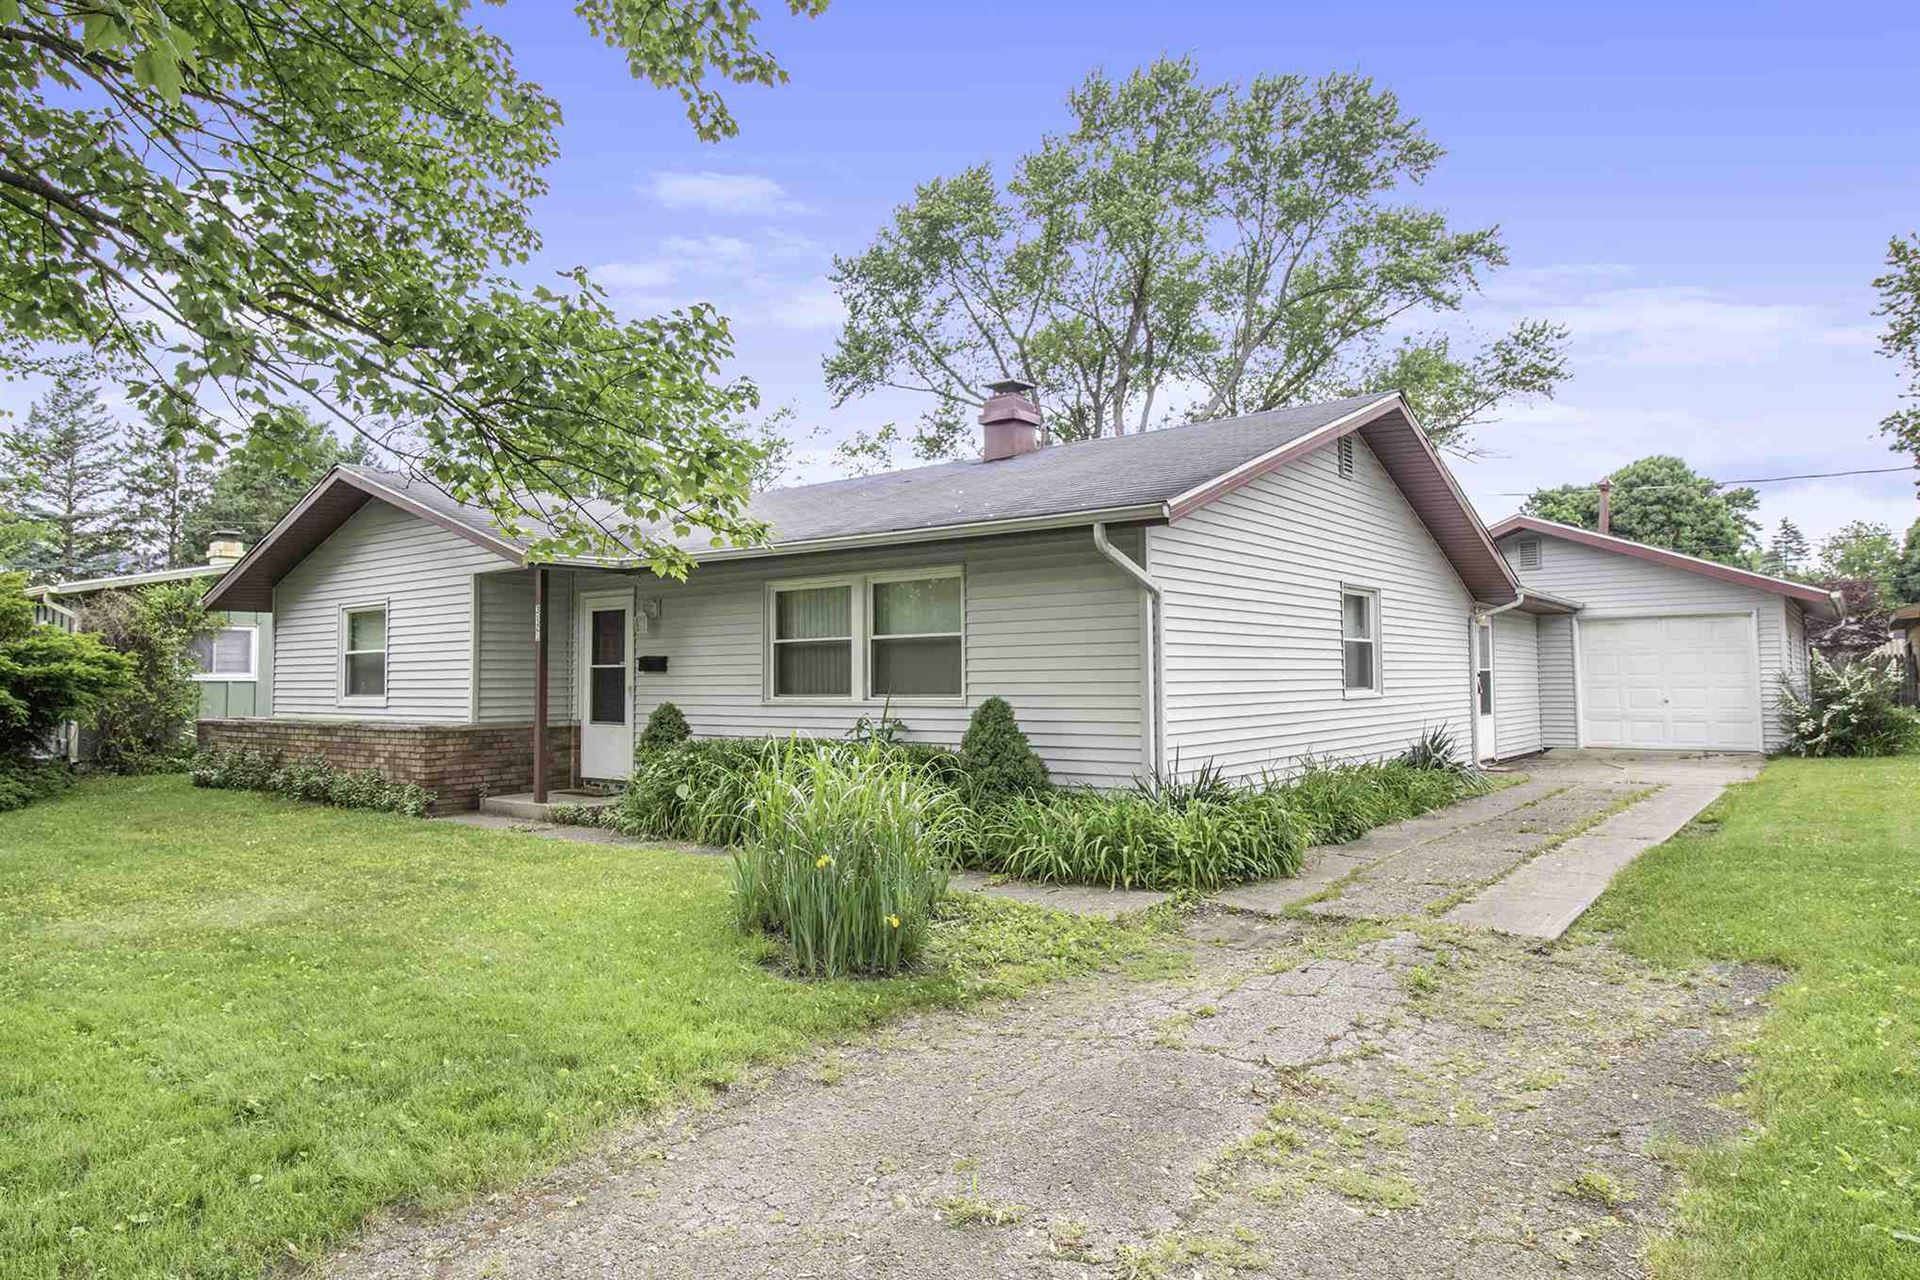 3121 Voll Lane, South Bend, IN 46615 - #: 202020799